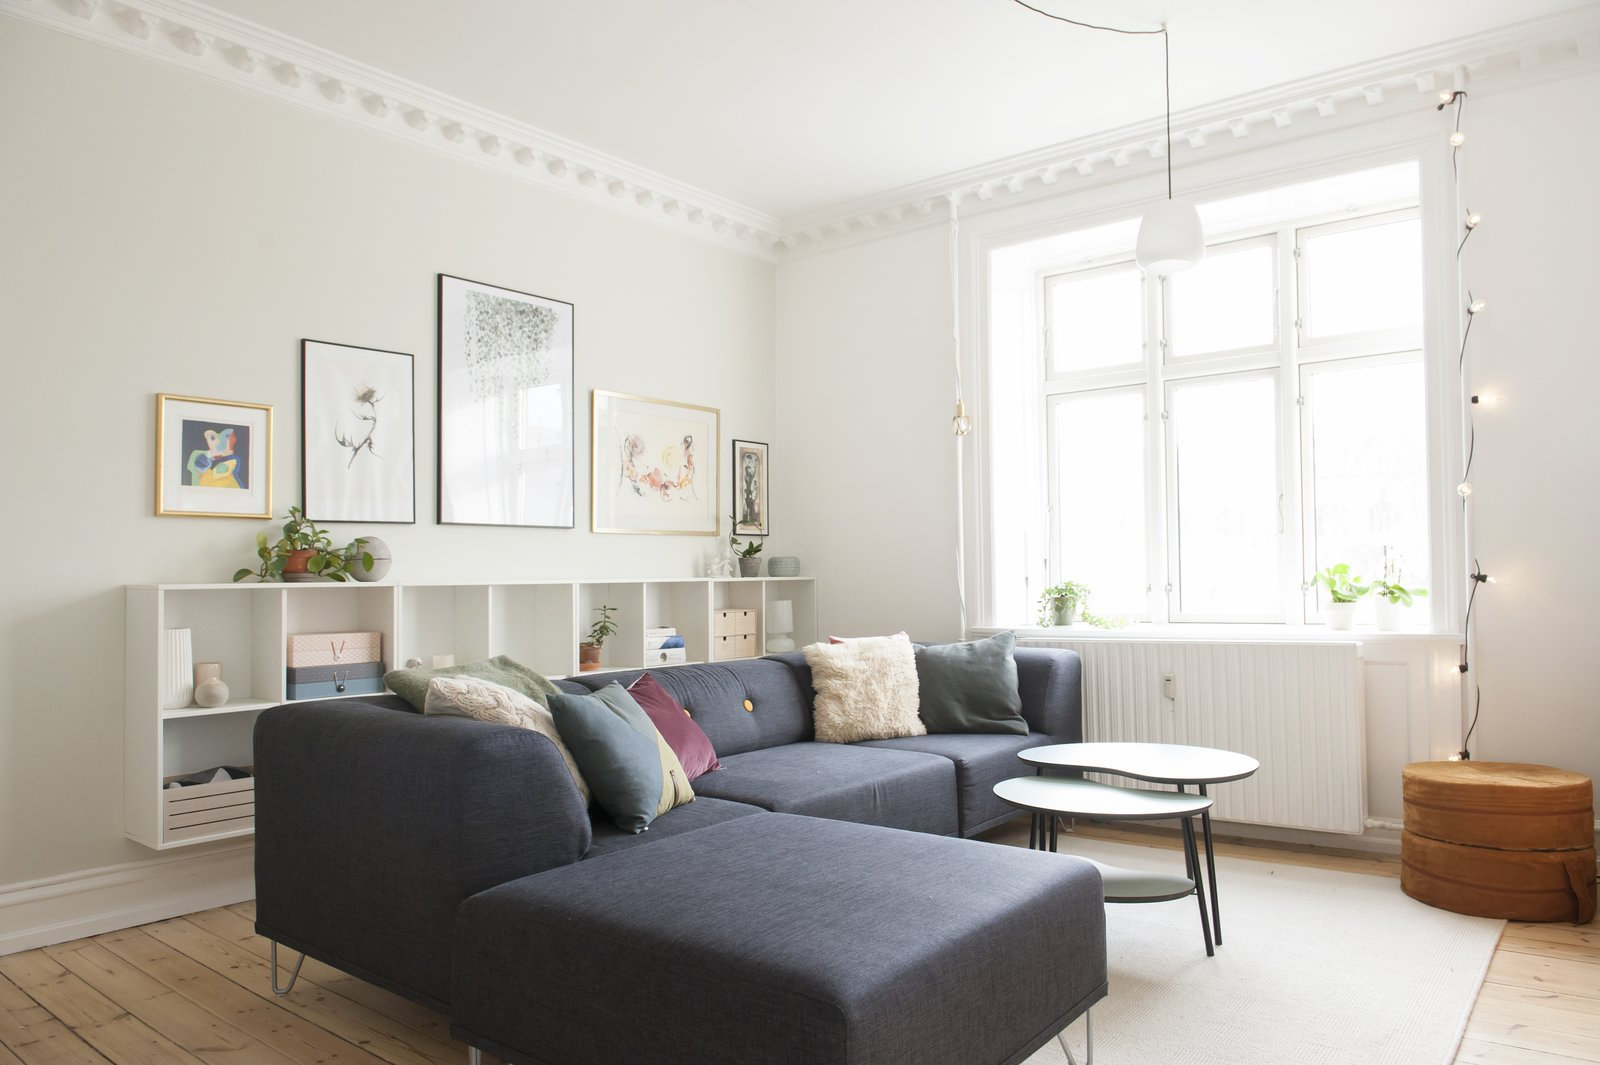 Living Room, Ottomans, Bookcase, Pendant Lighting, Accent Lighting, Coffee Tables, Sectional, Light Hardwood Floor, and Rug Floor living room with navy blue couch, original artwork, and crown molding  Photo 1 of 8 in Read This Before You Hang Up New Artwork from Pretty and Sweet Family Flat